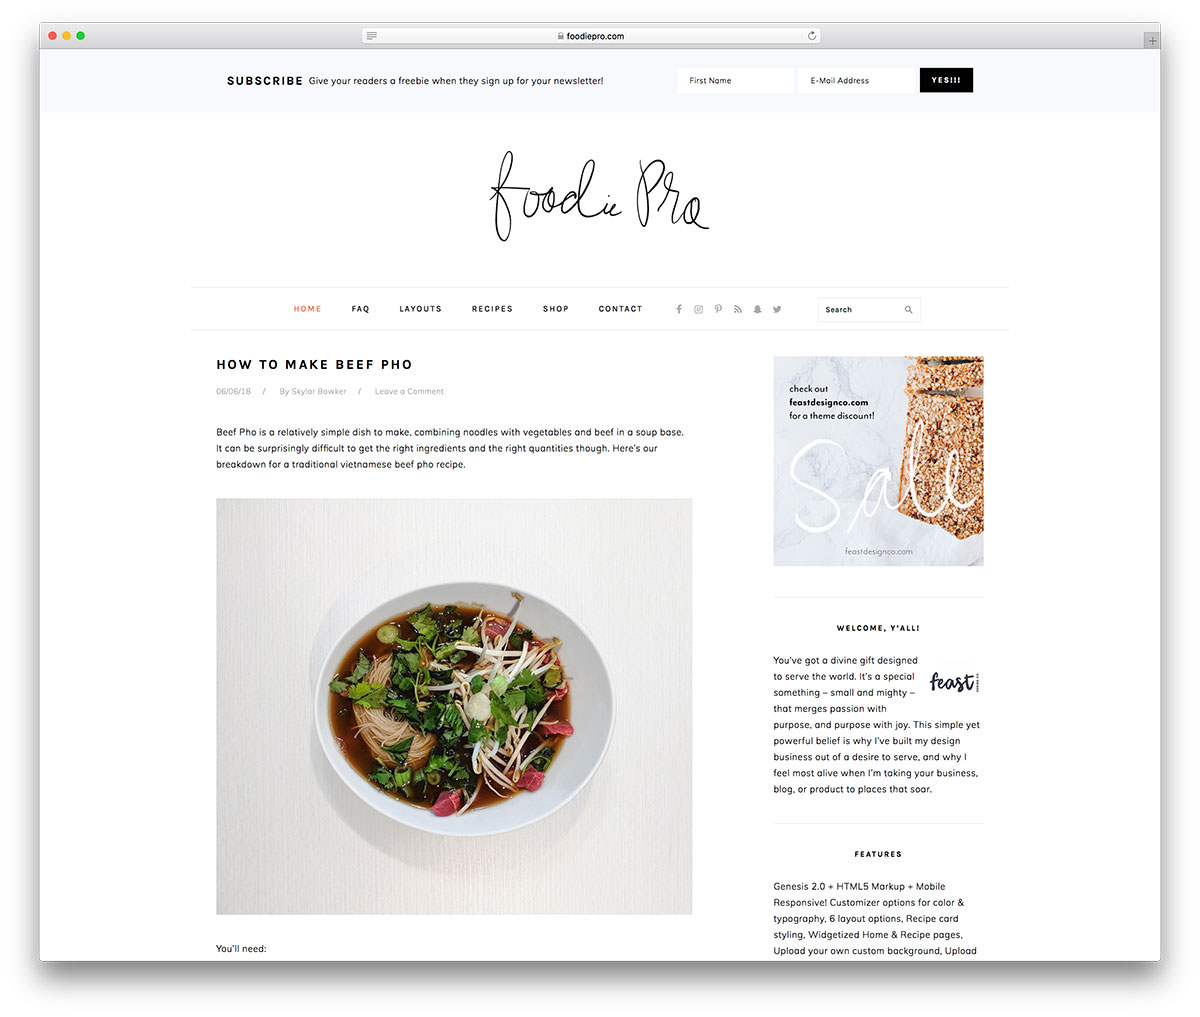 foodie pro food blog genesis theme - Best WordPress Genesis Child Themes for Businesses, Magazines, and Blogs